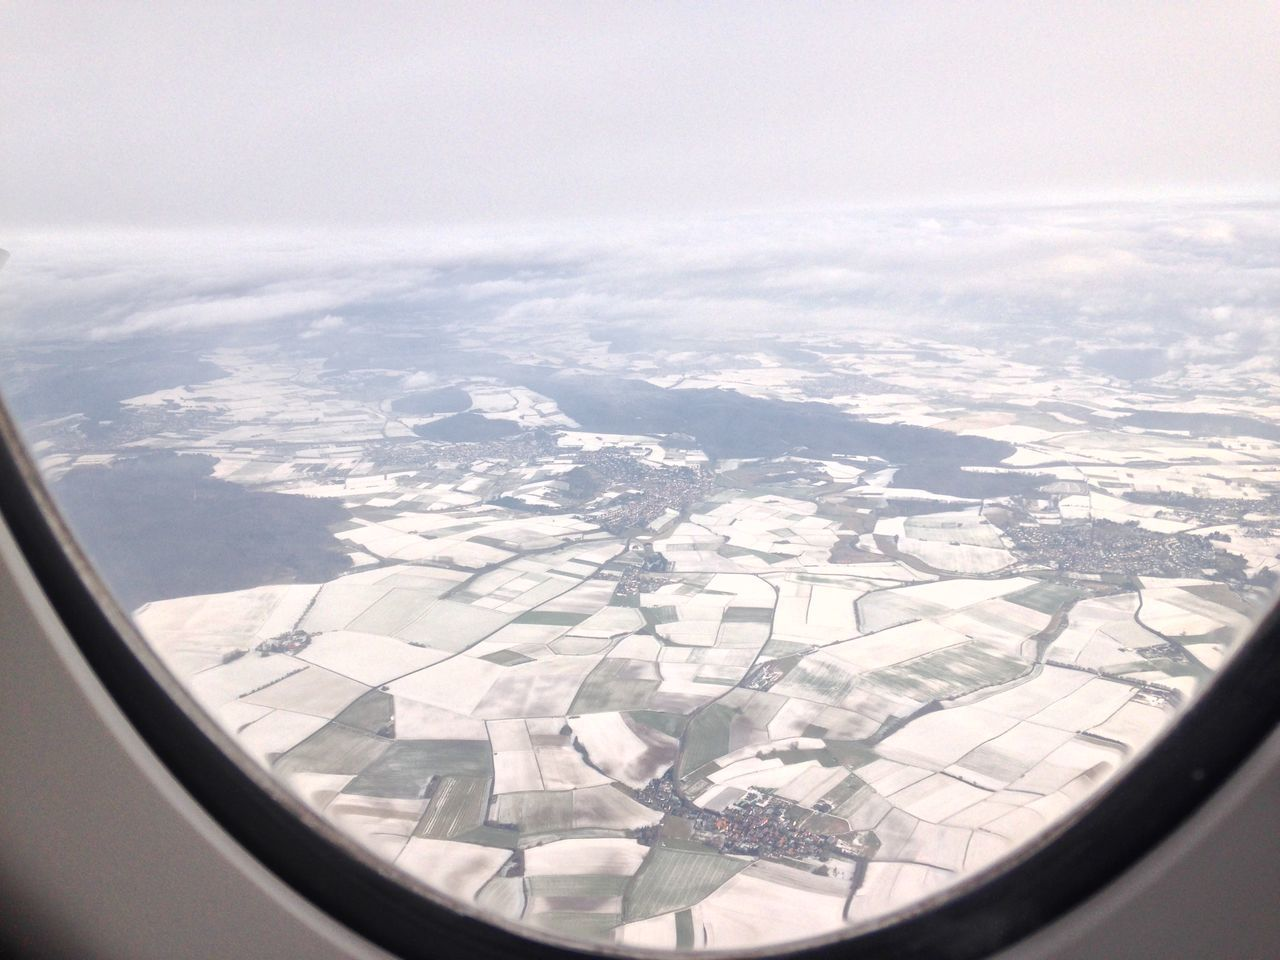 Aerial View,  Airplane,  Awe,  Beauty In Nature,  Cold Temperature